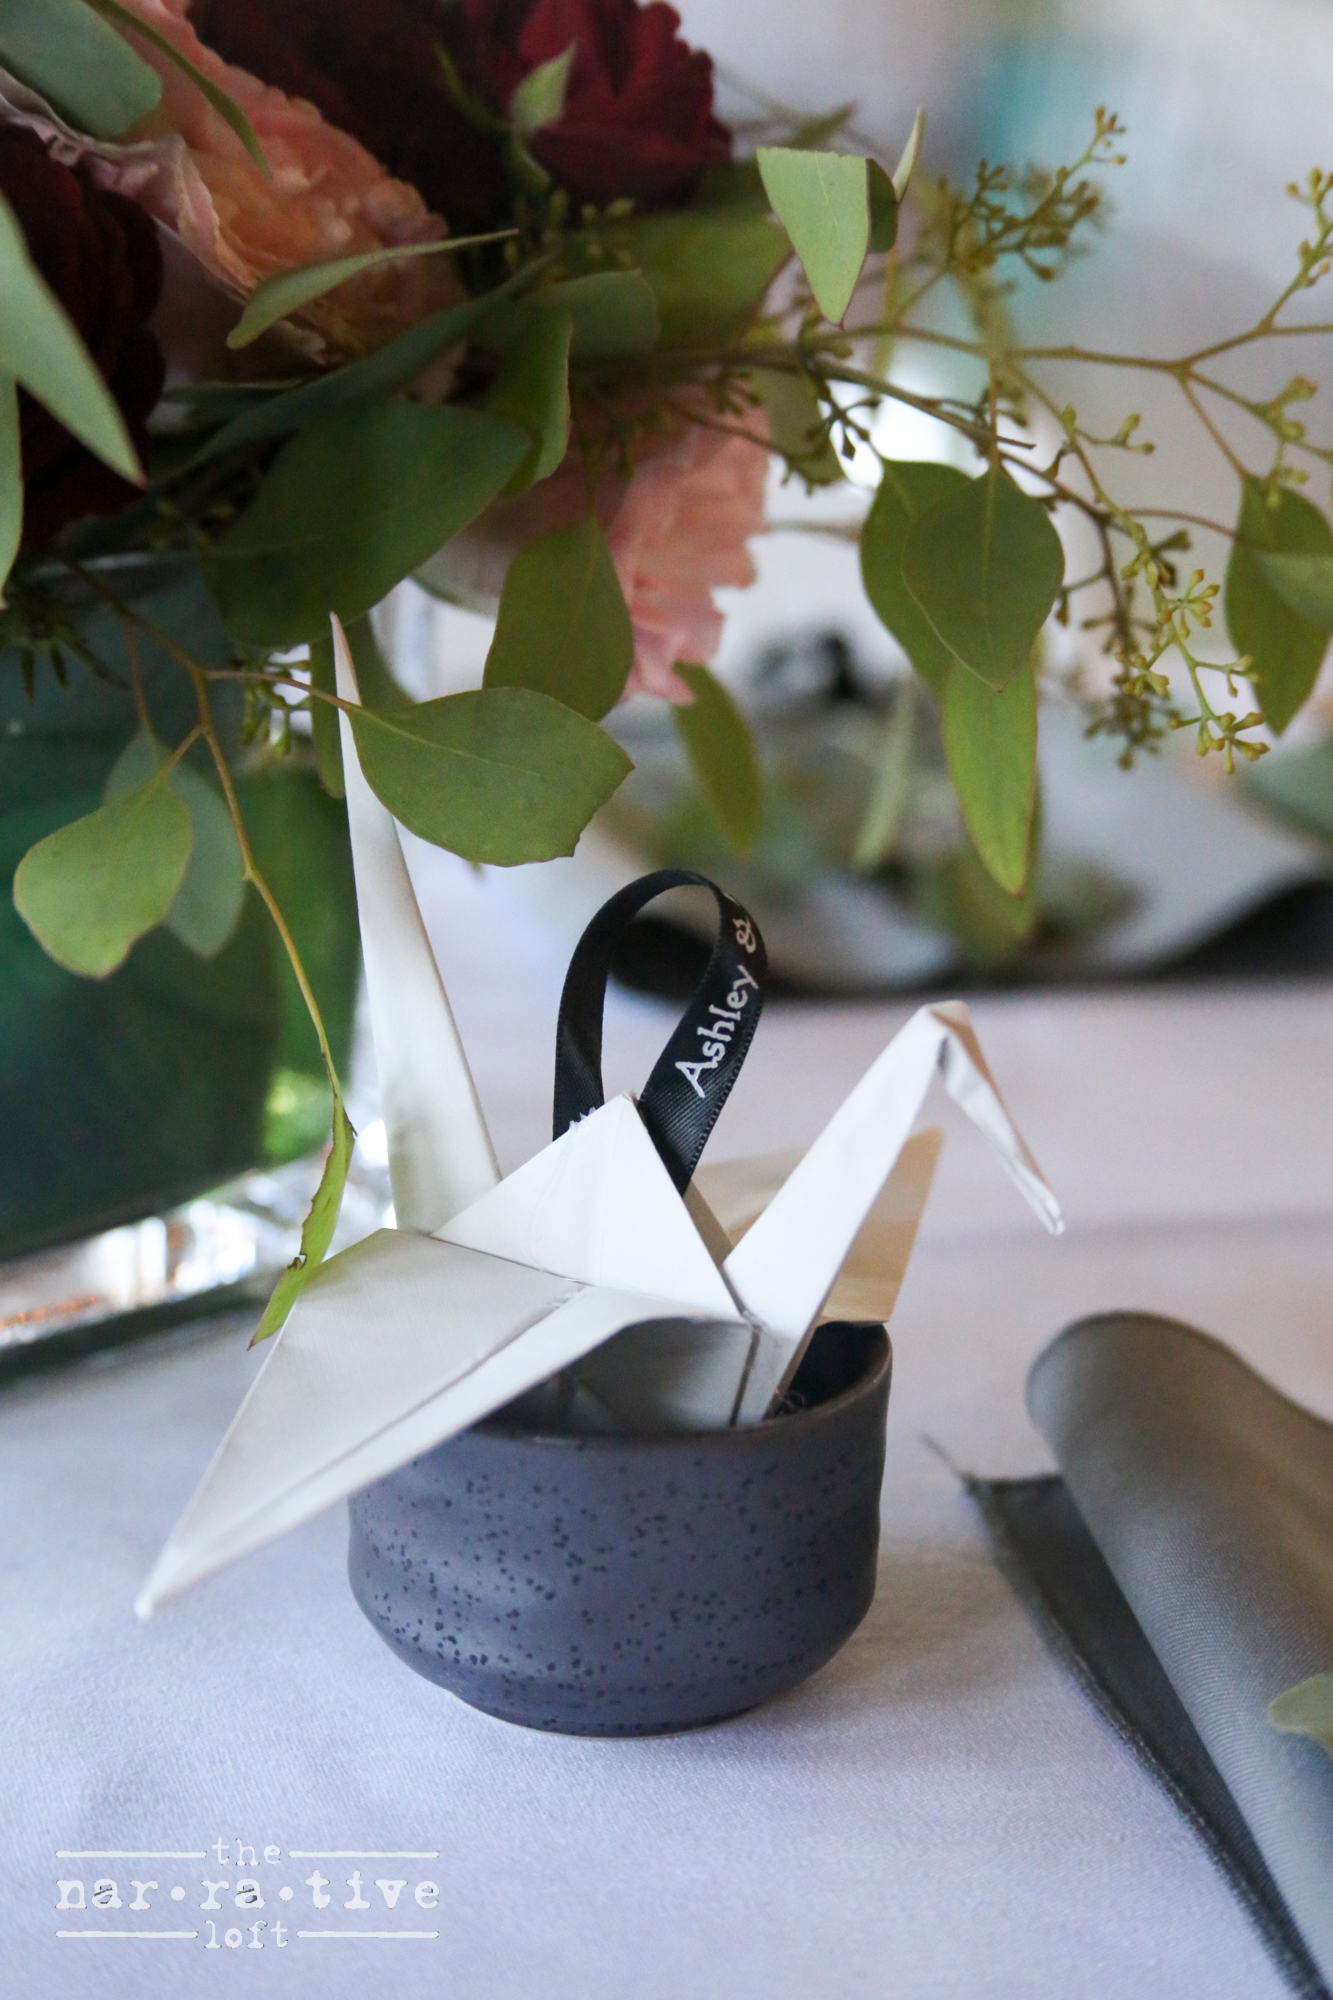 Sake cups and origami cranes as wedding favors. We're in love!